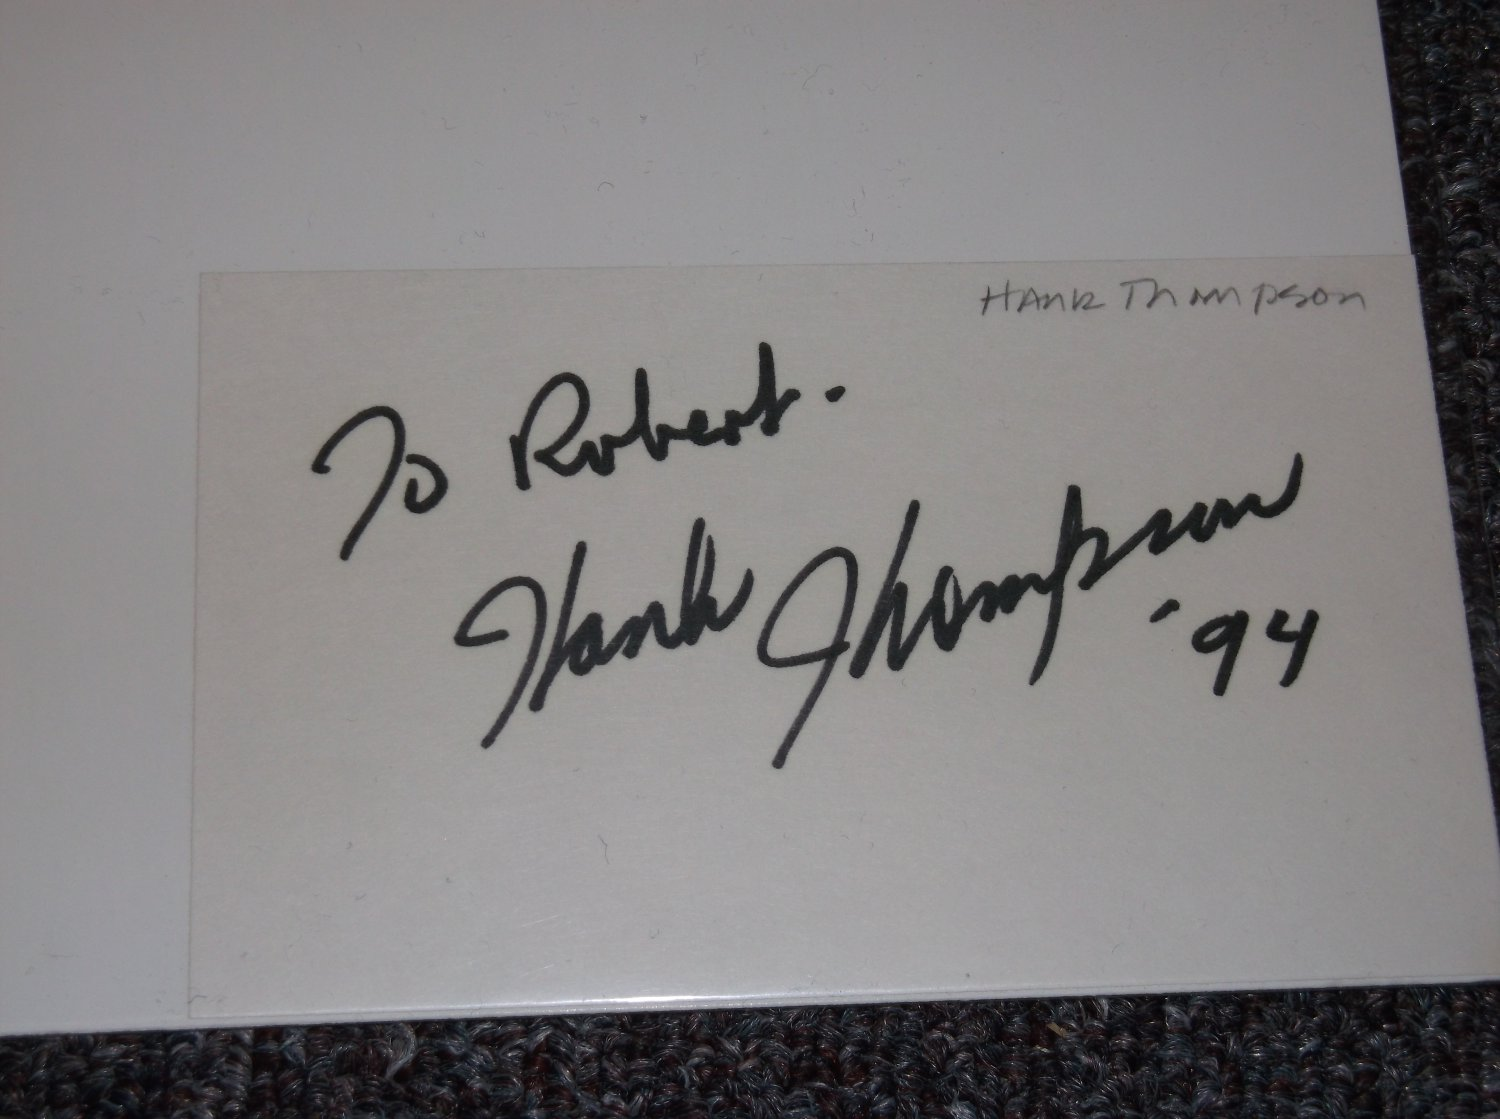 Hank Thompson 1925-2007 signed inscribed 3x5 card.